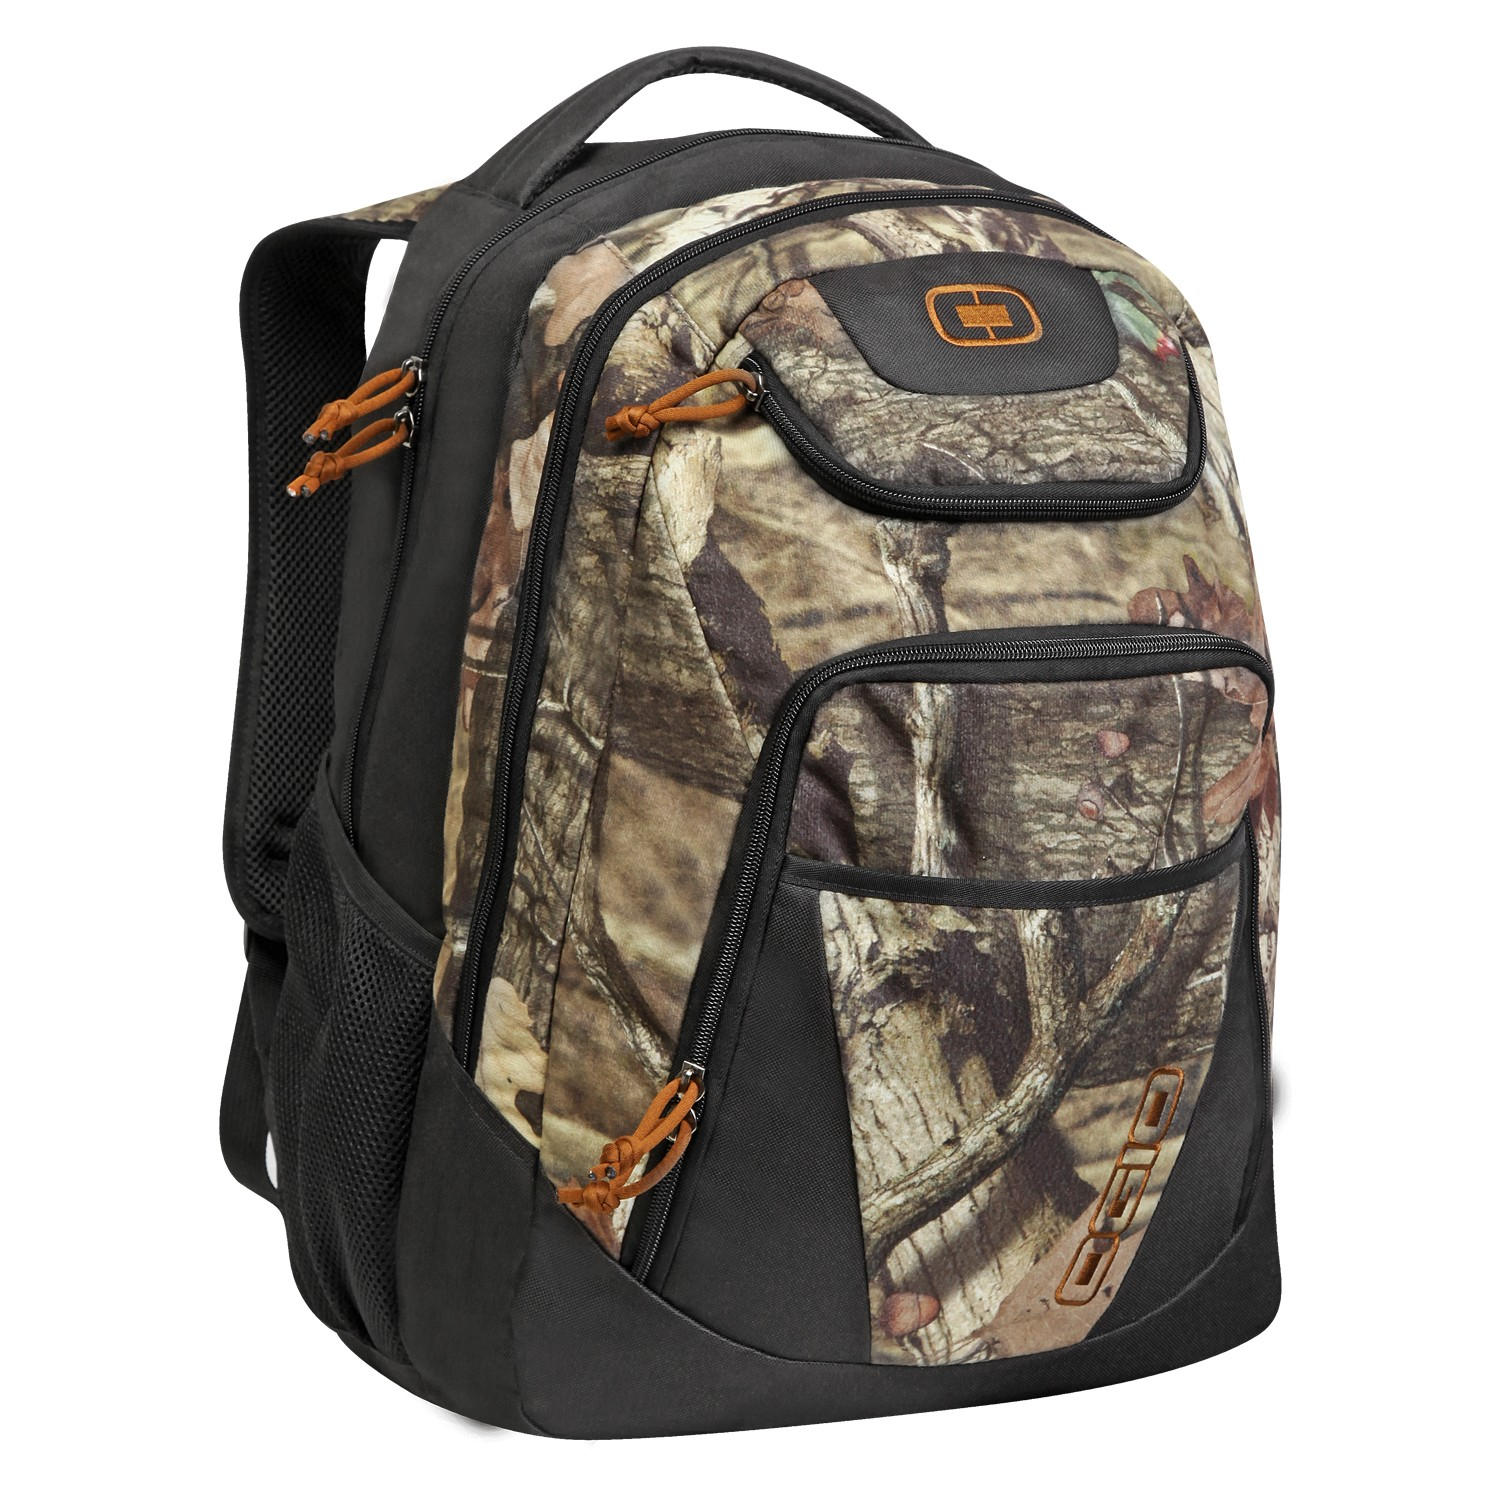 Ogio Tribune Backpack vAroPhkb